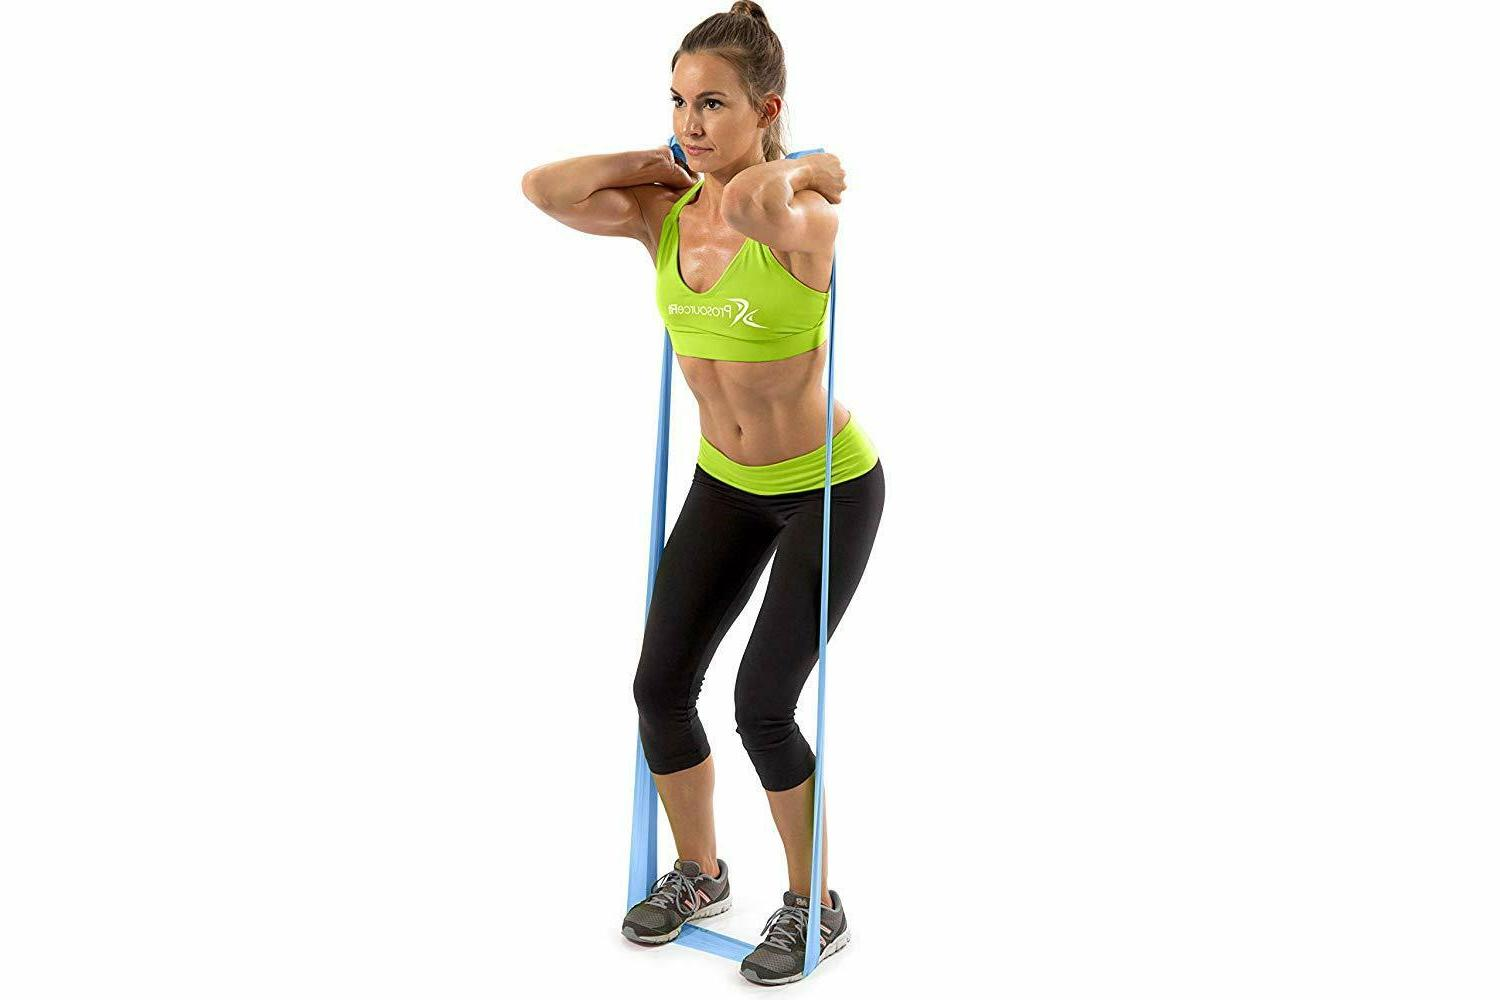 Set 3 Therapy Resistance Bands 6' each-Extra Long